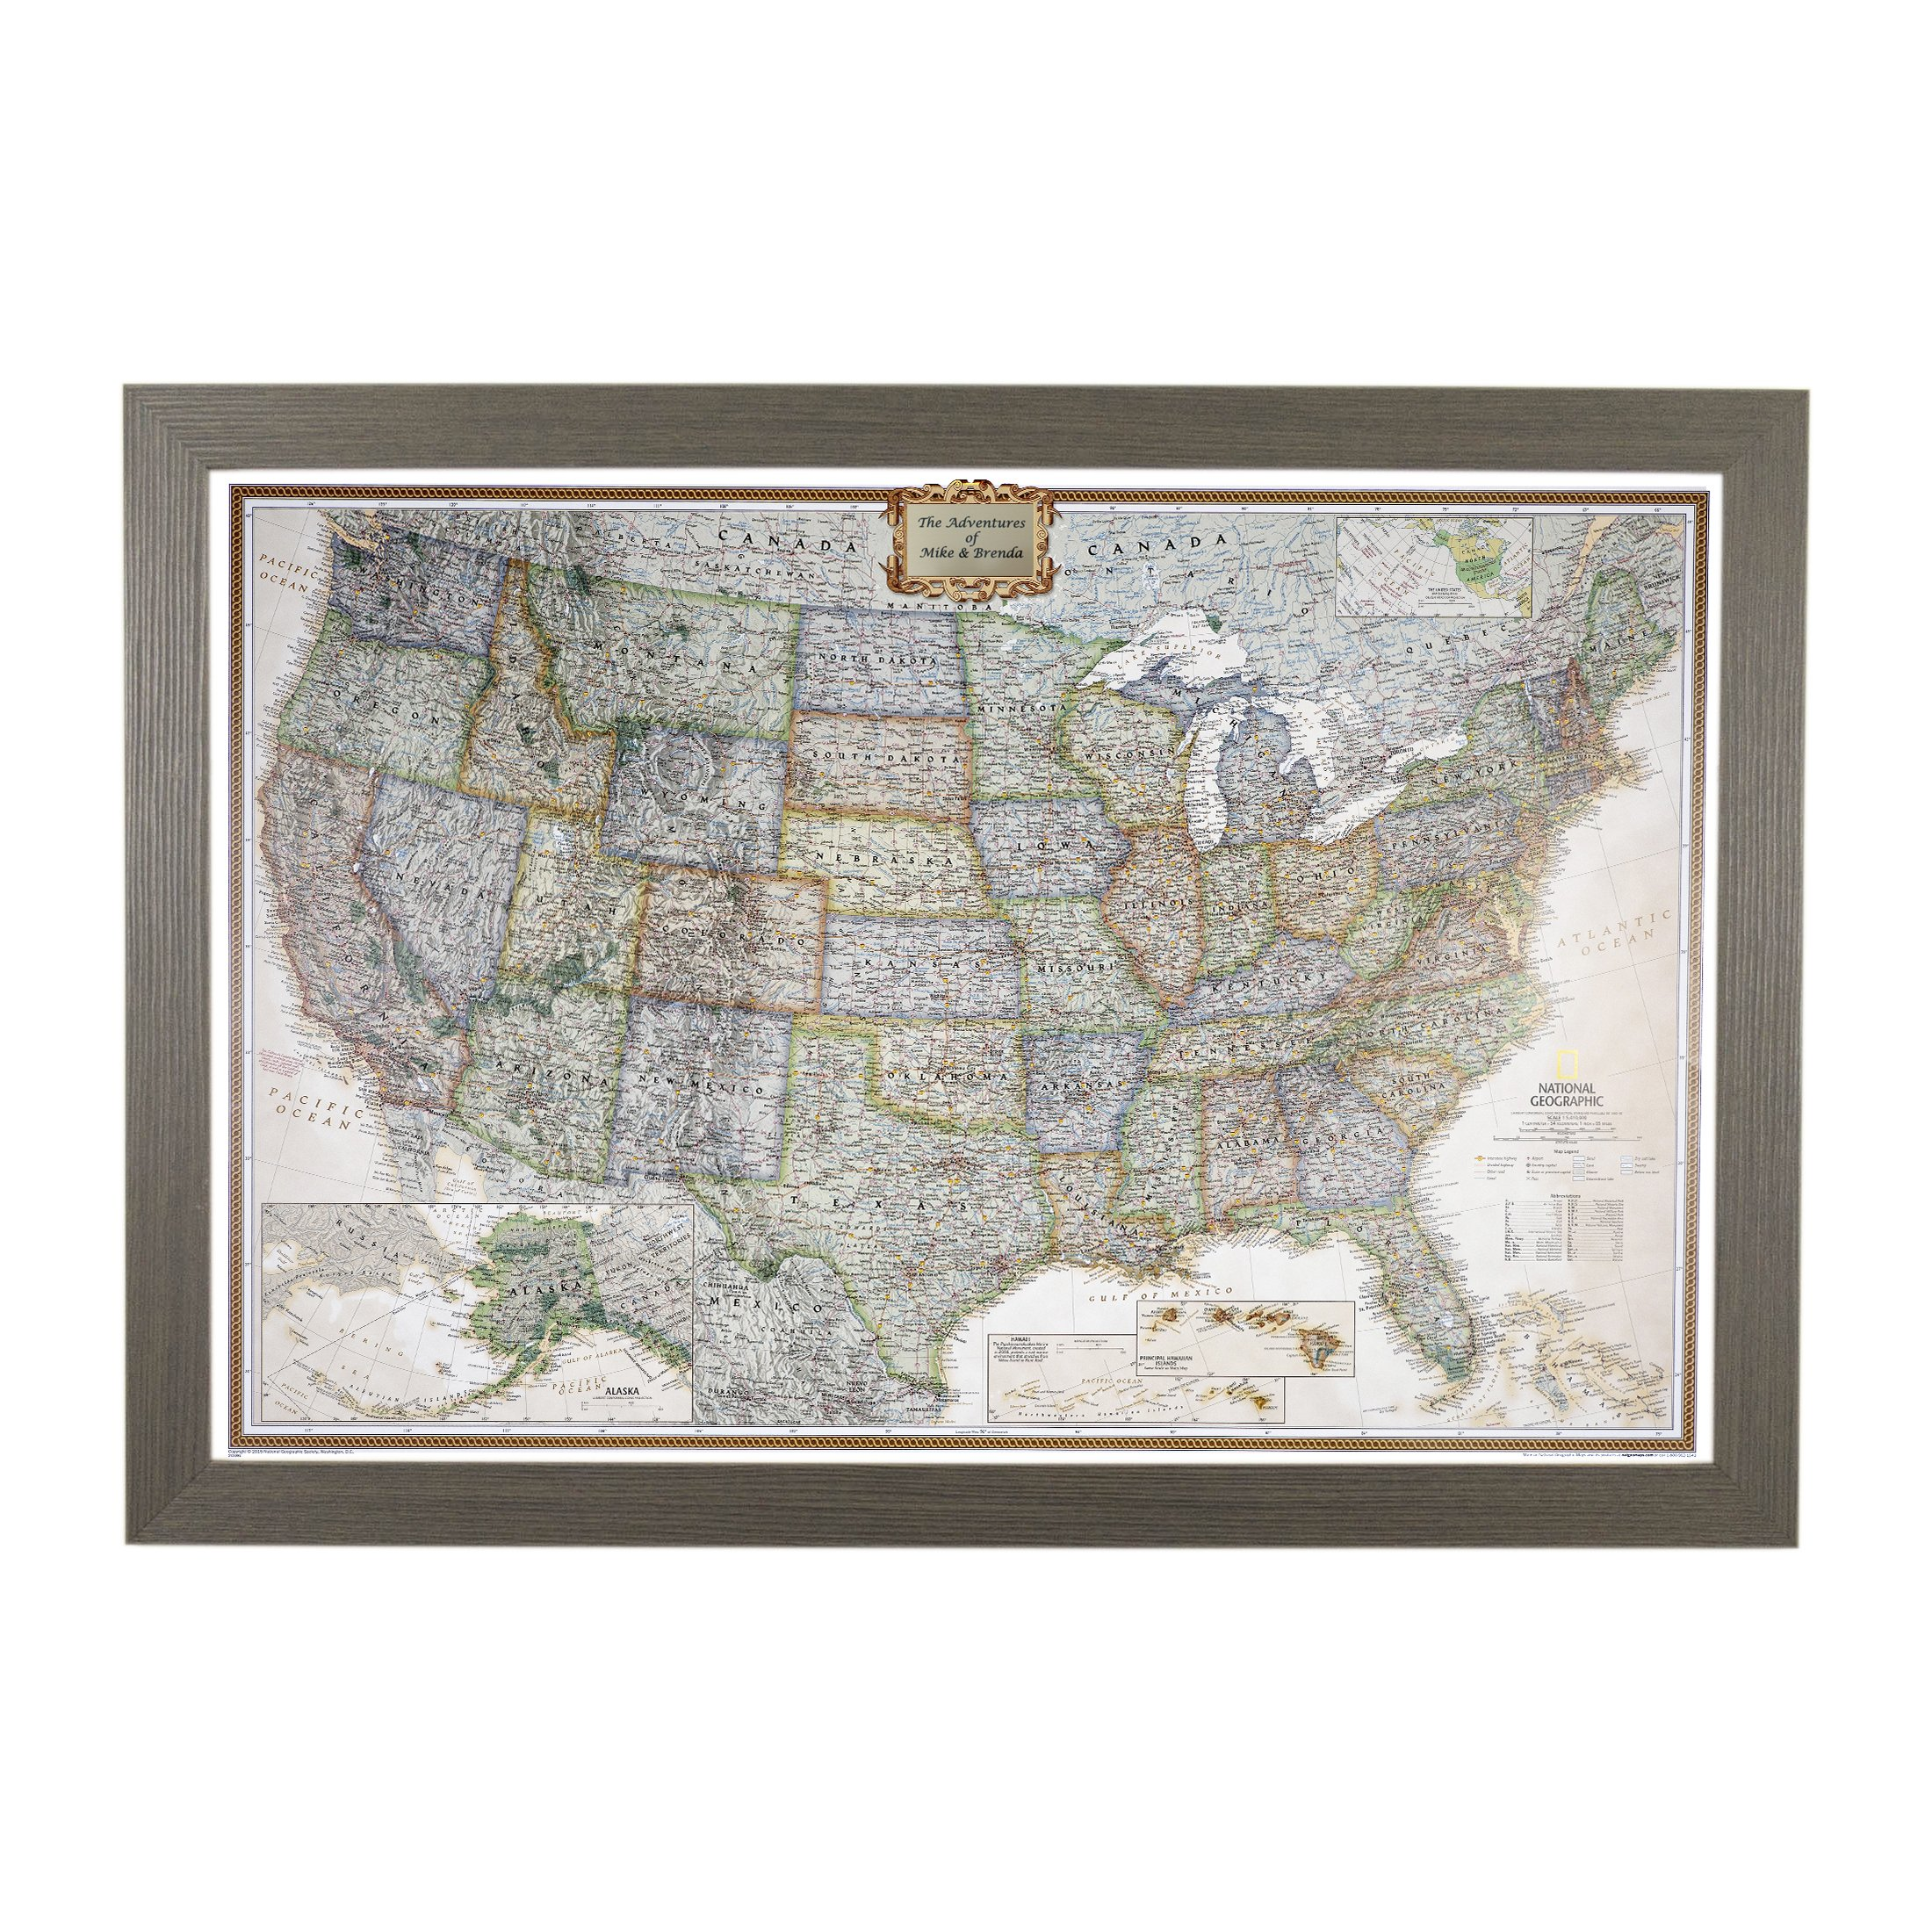 Personalized Executive US Push Pin Travel Map with Barnwood Gray Frame and Pins 24 x 36 by Push Pin Travel Maps